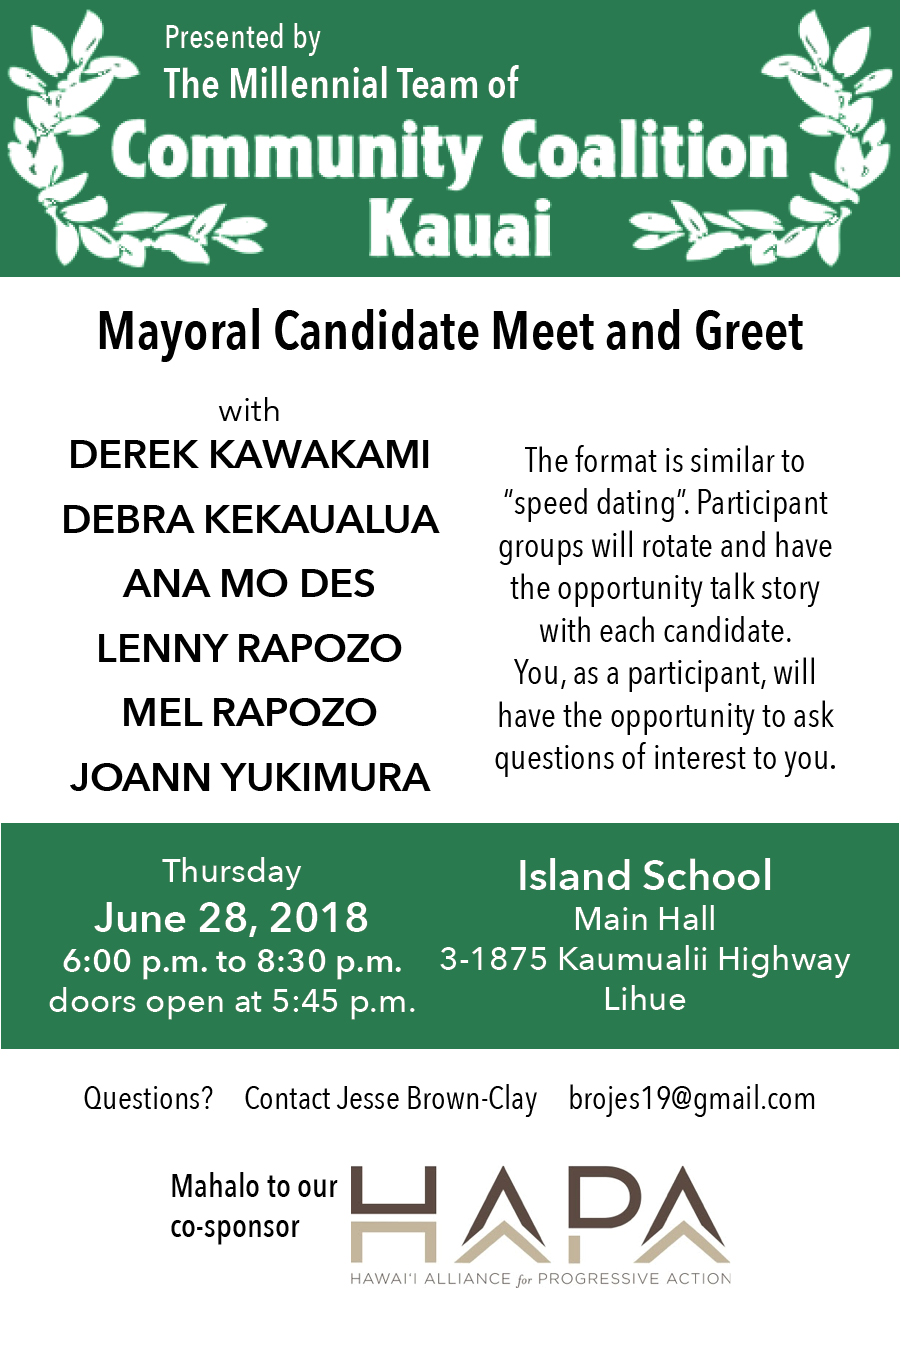 Kauai Mayoral Candidate Meet and Greet Flyer